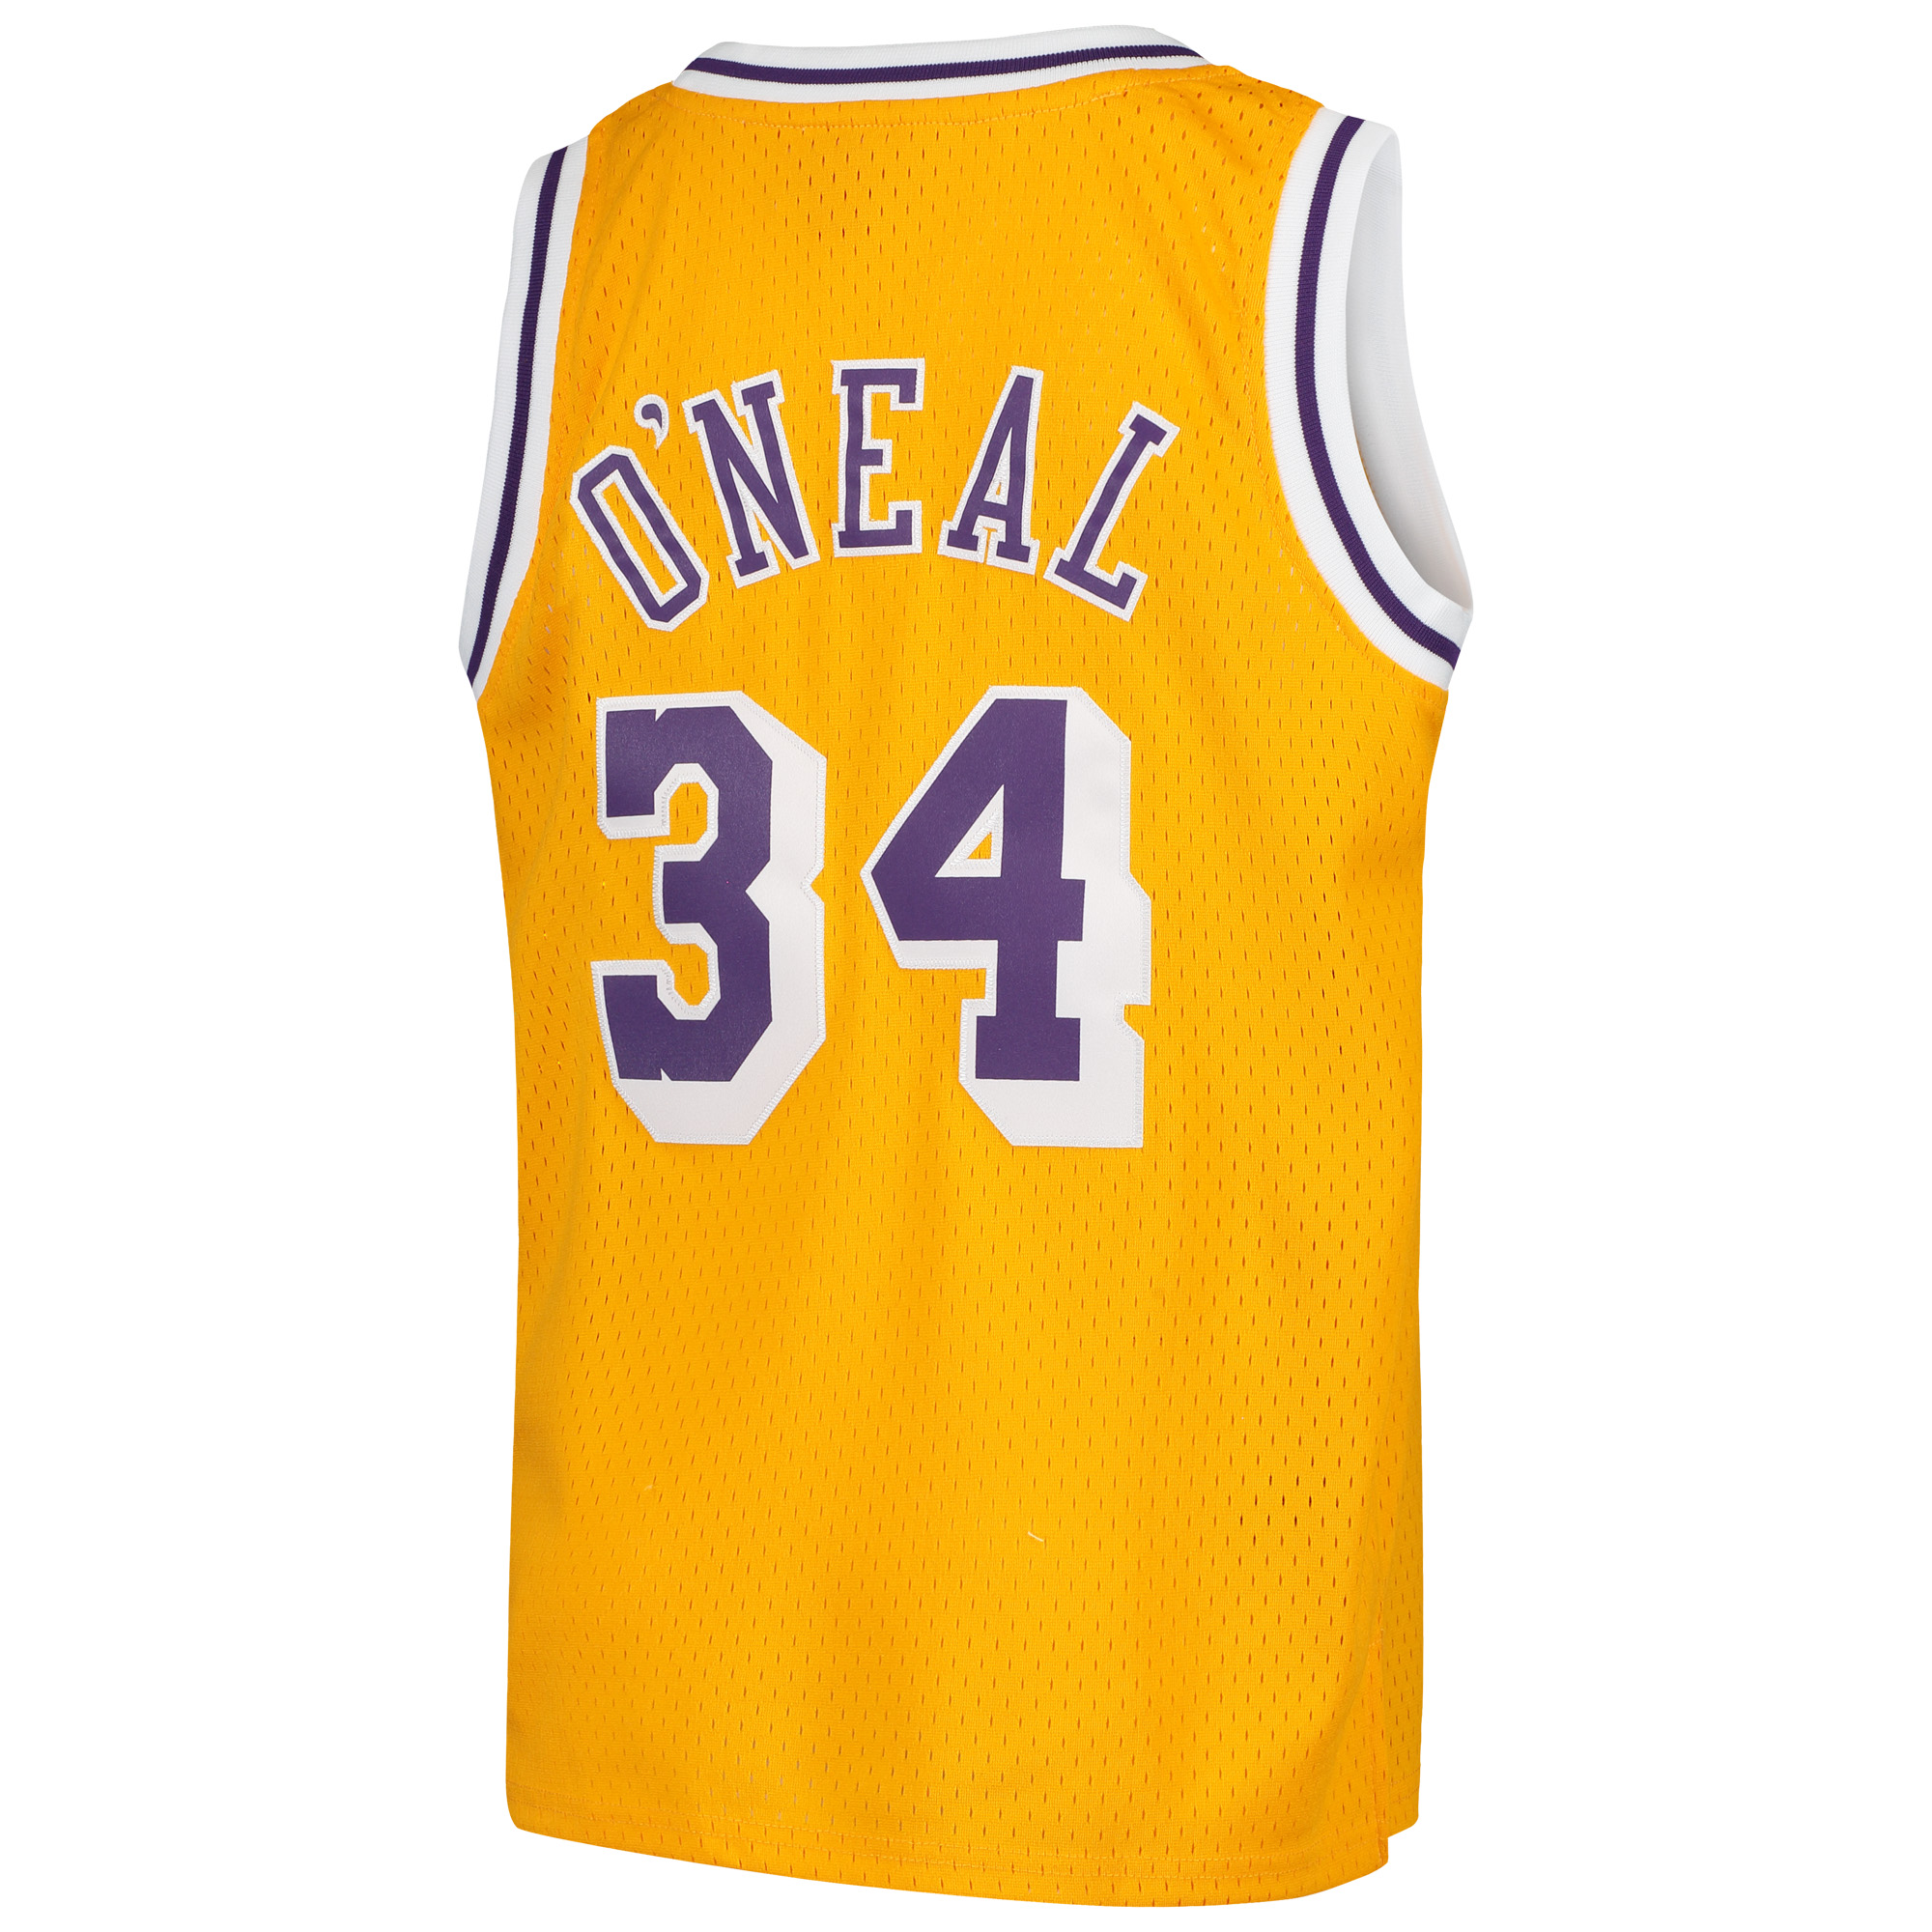 separation shoes de98e 37a5a Shaquille O'Neal Los Angeles Lakers Mitchell & Ness Youth Swingman  Throwback Jersey - Gold